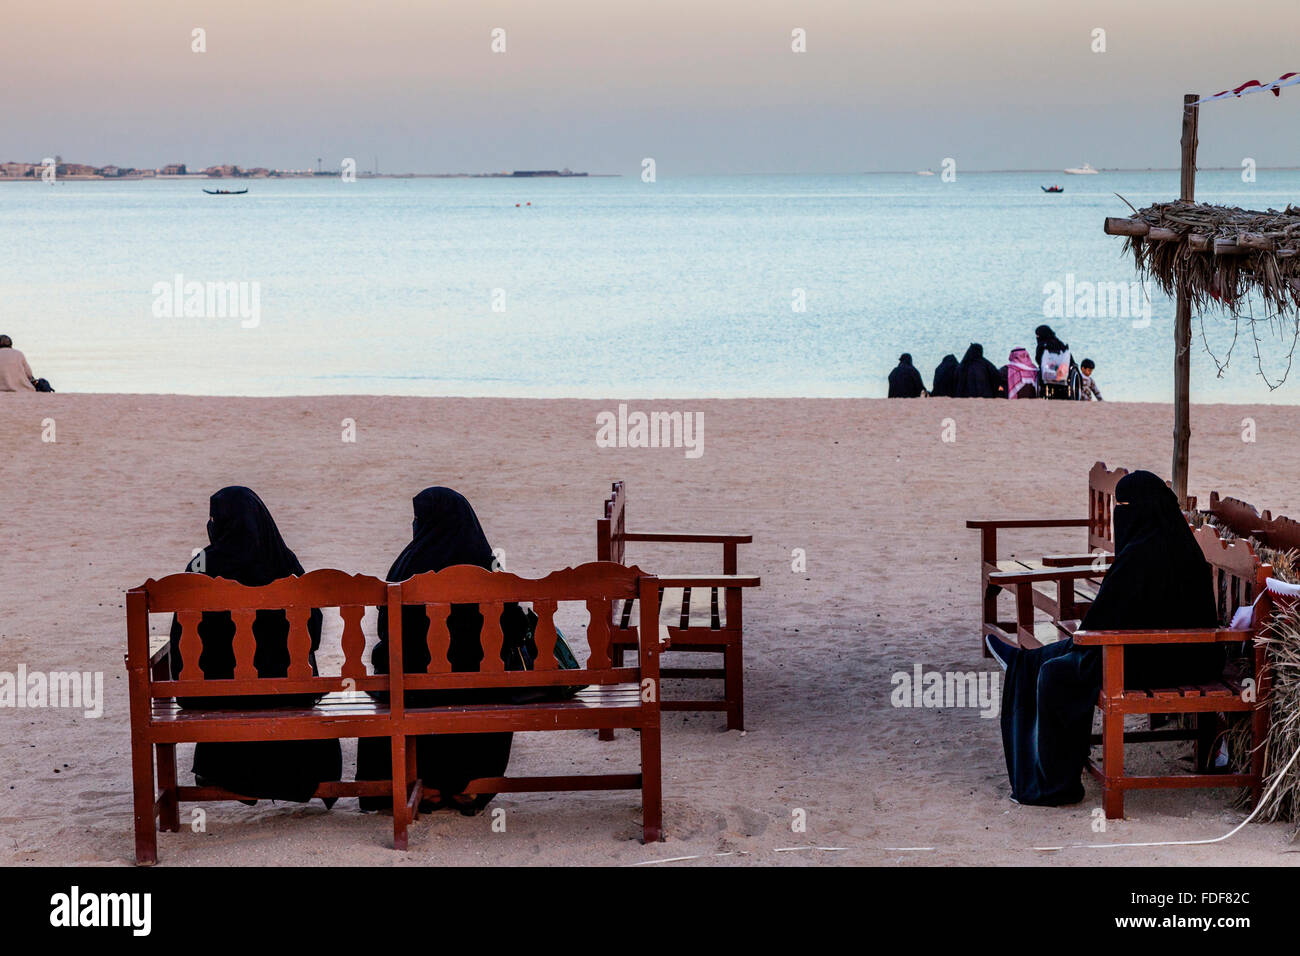 Local People On The Beach At The Katara Cultural Village, Doha, Qatar - Stock Image